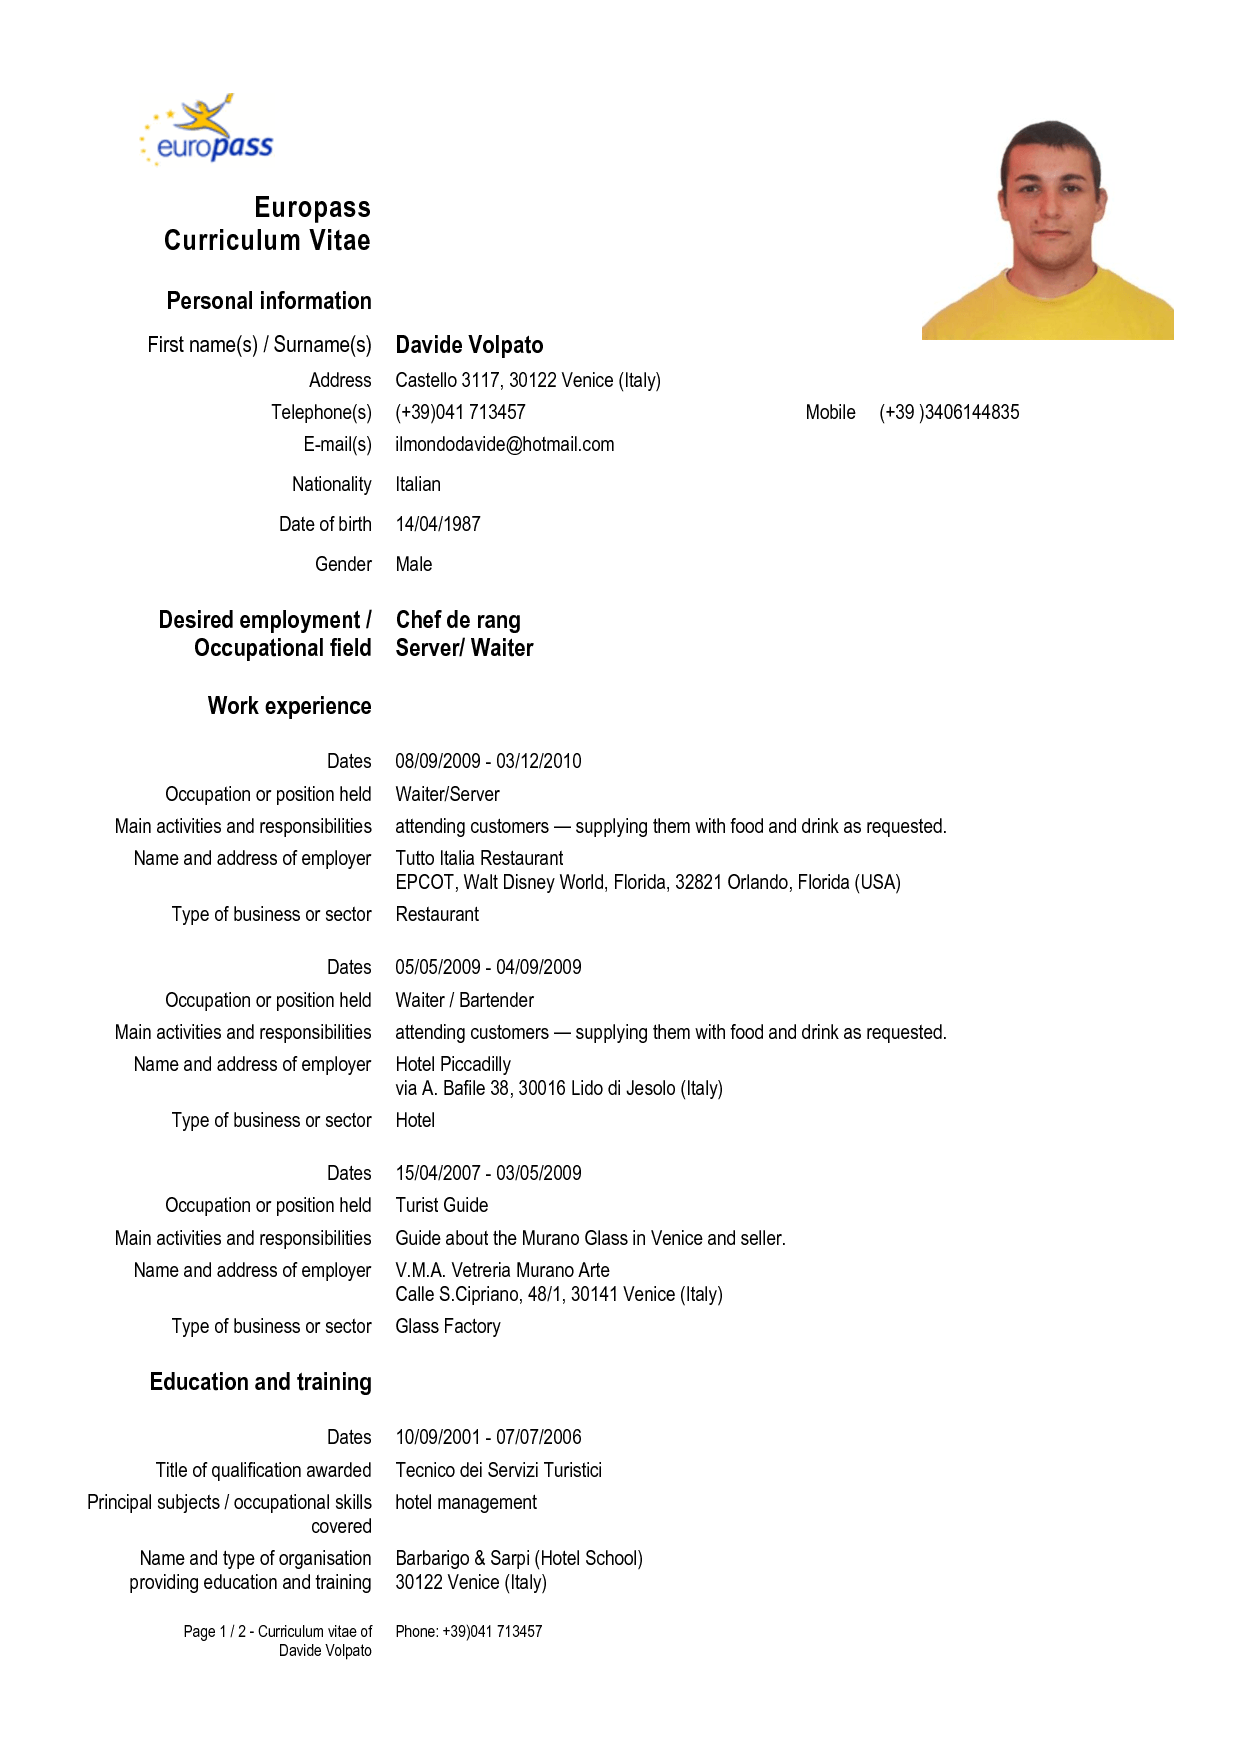 cv form in english download cv resume examples to download for free slideshare europass cv